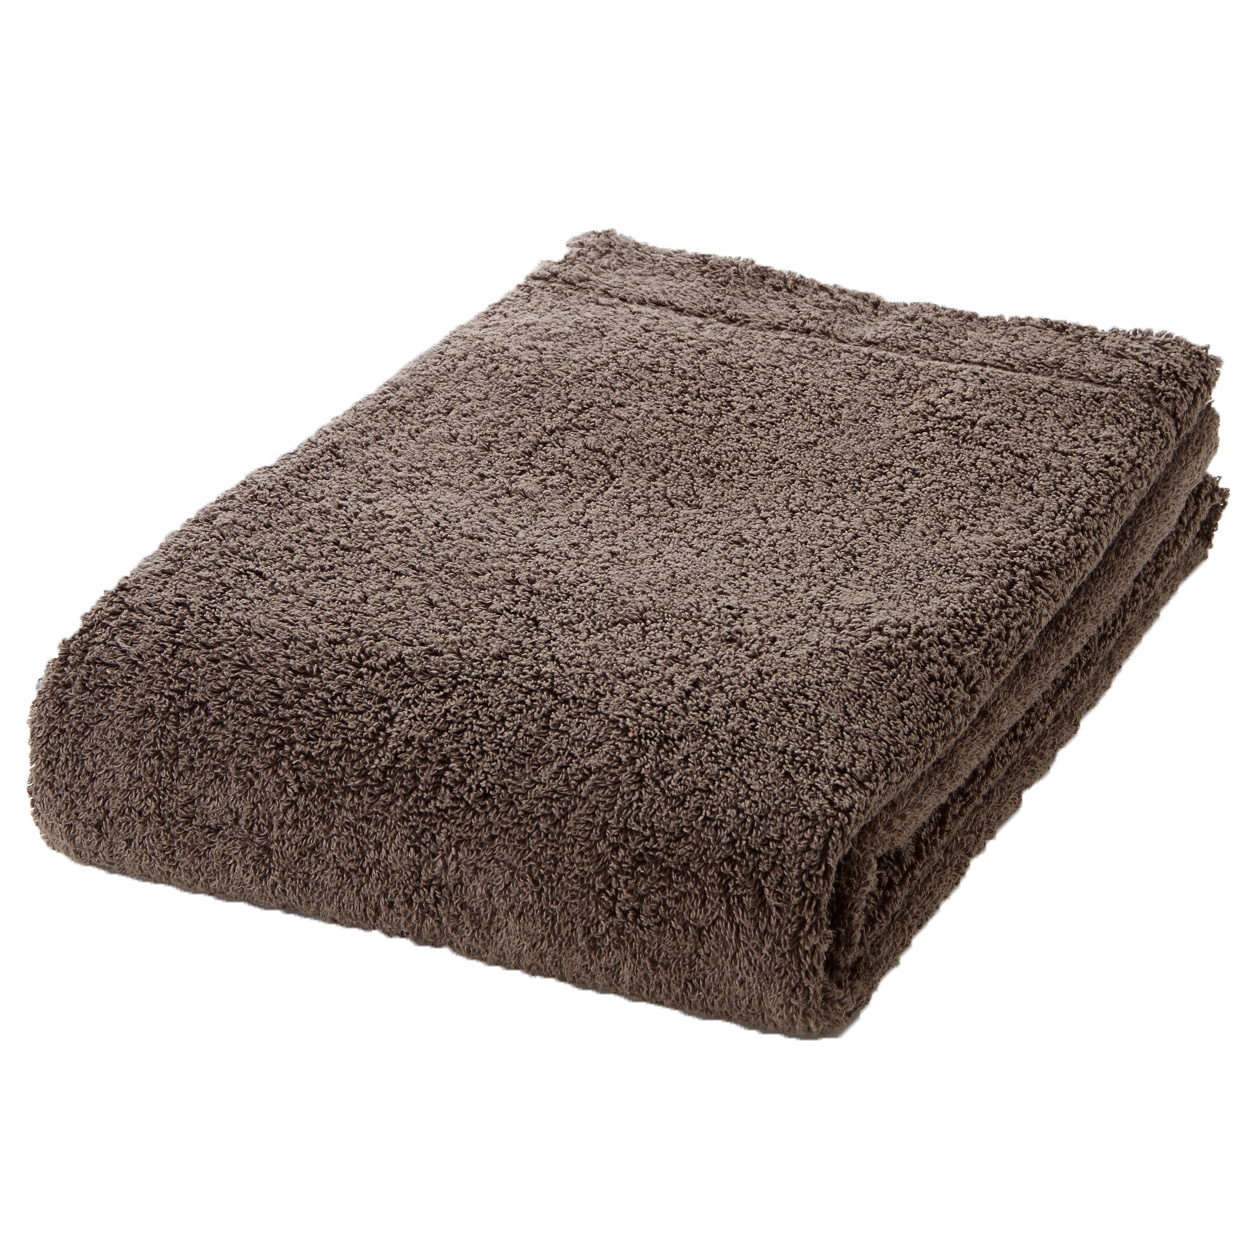 brown thick bath towel